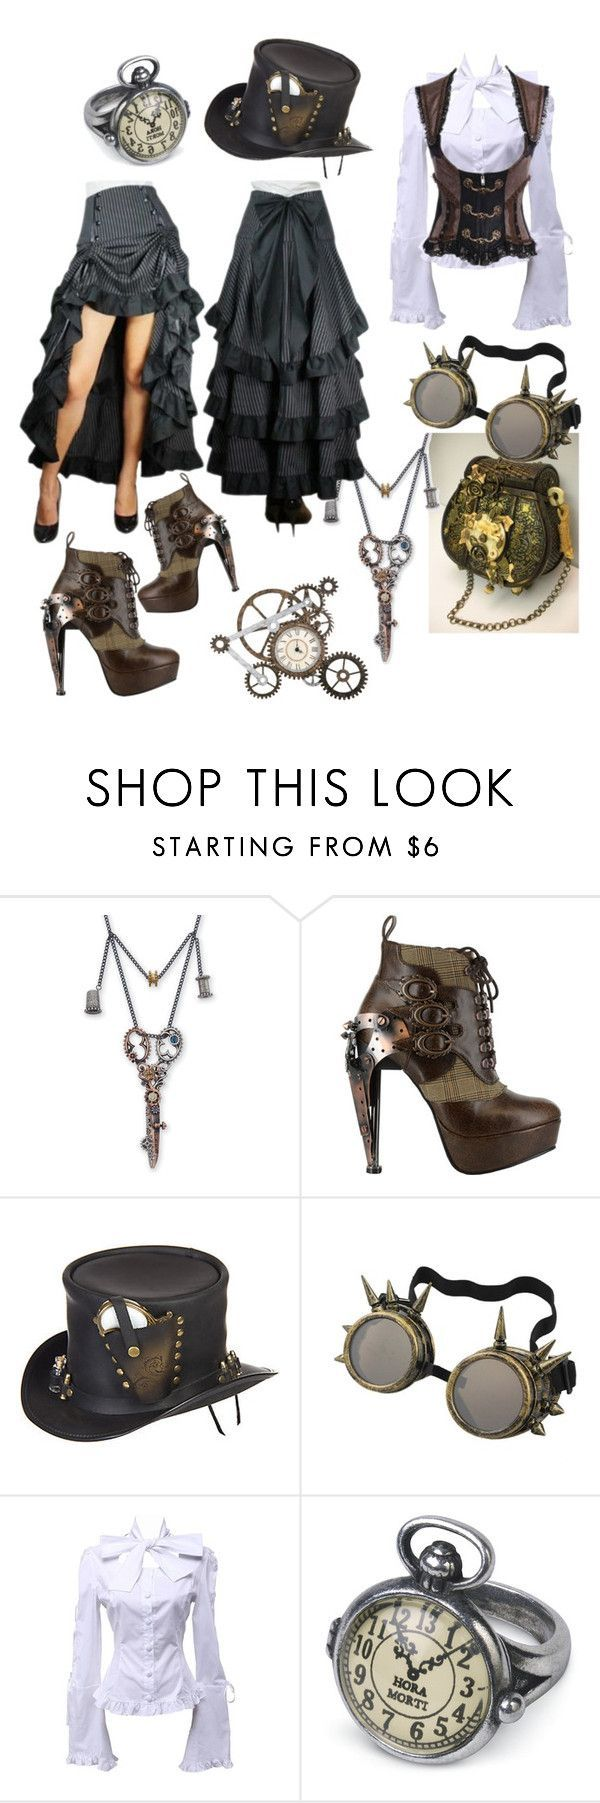 """""""Steampunk"""" by iidapollari ❤ liked on Polyvore featuring HADES and Overland Sheepskin Co. https://www.steampunkartifacts.com"""